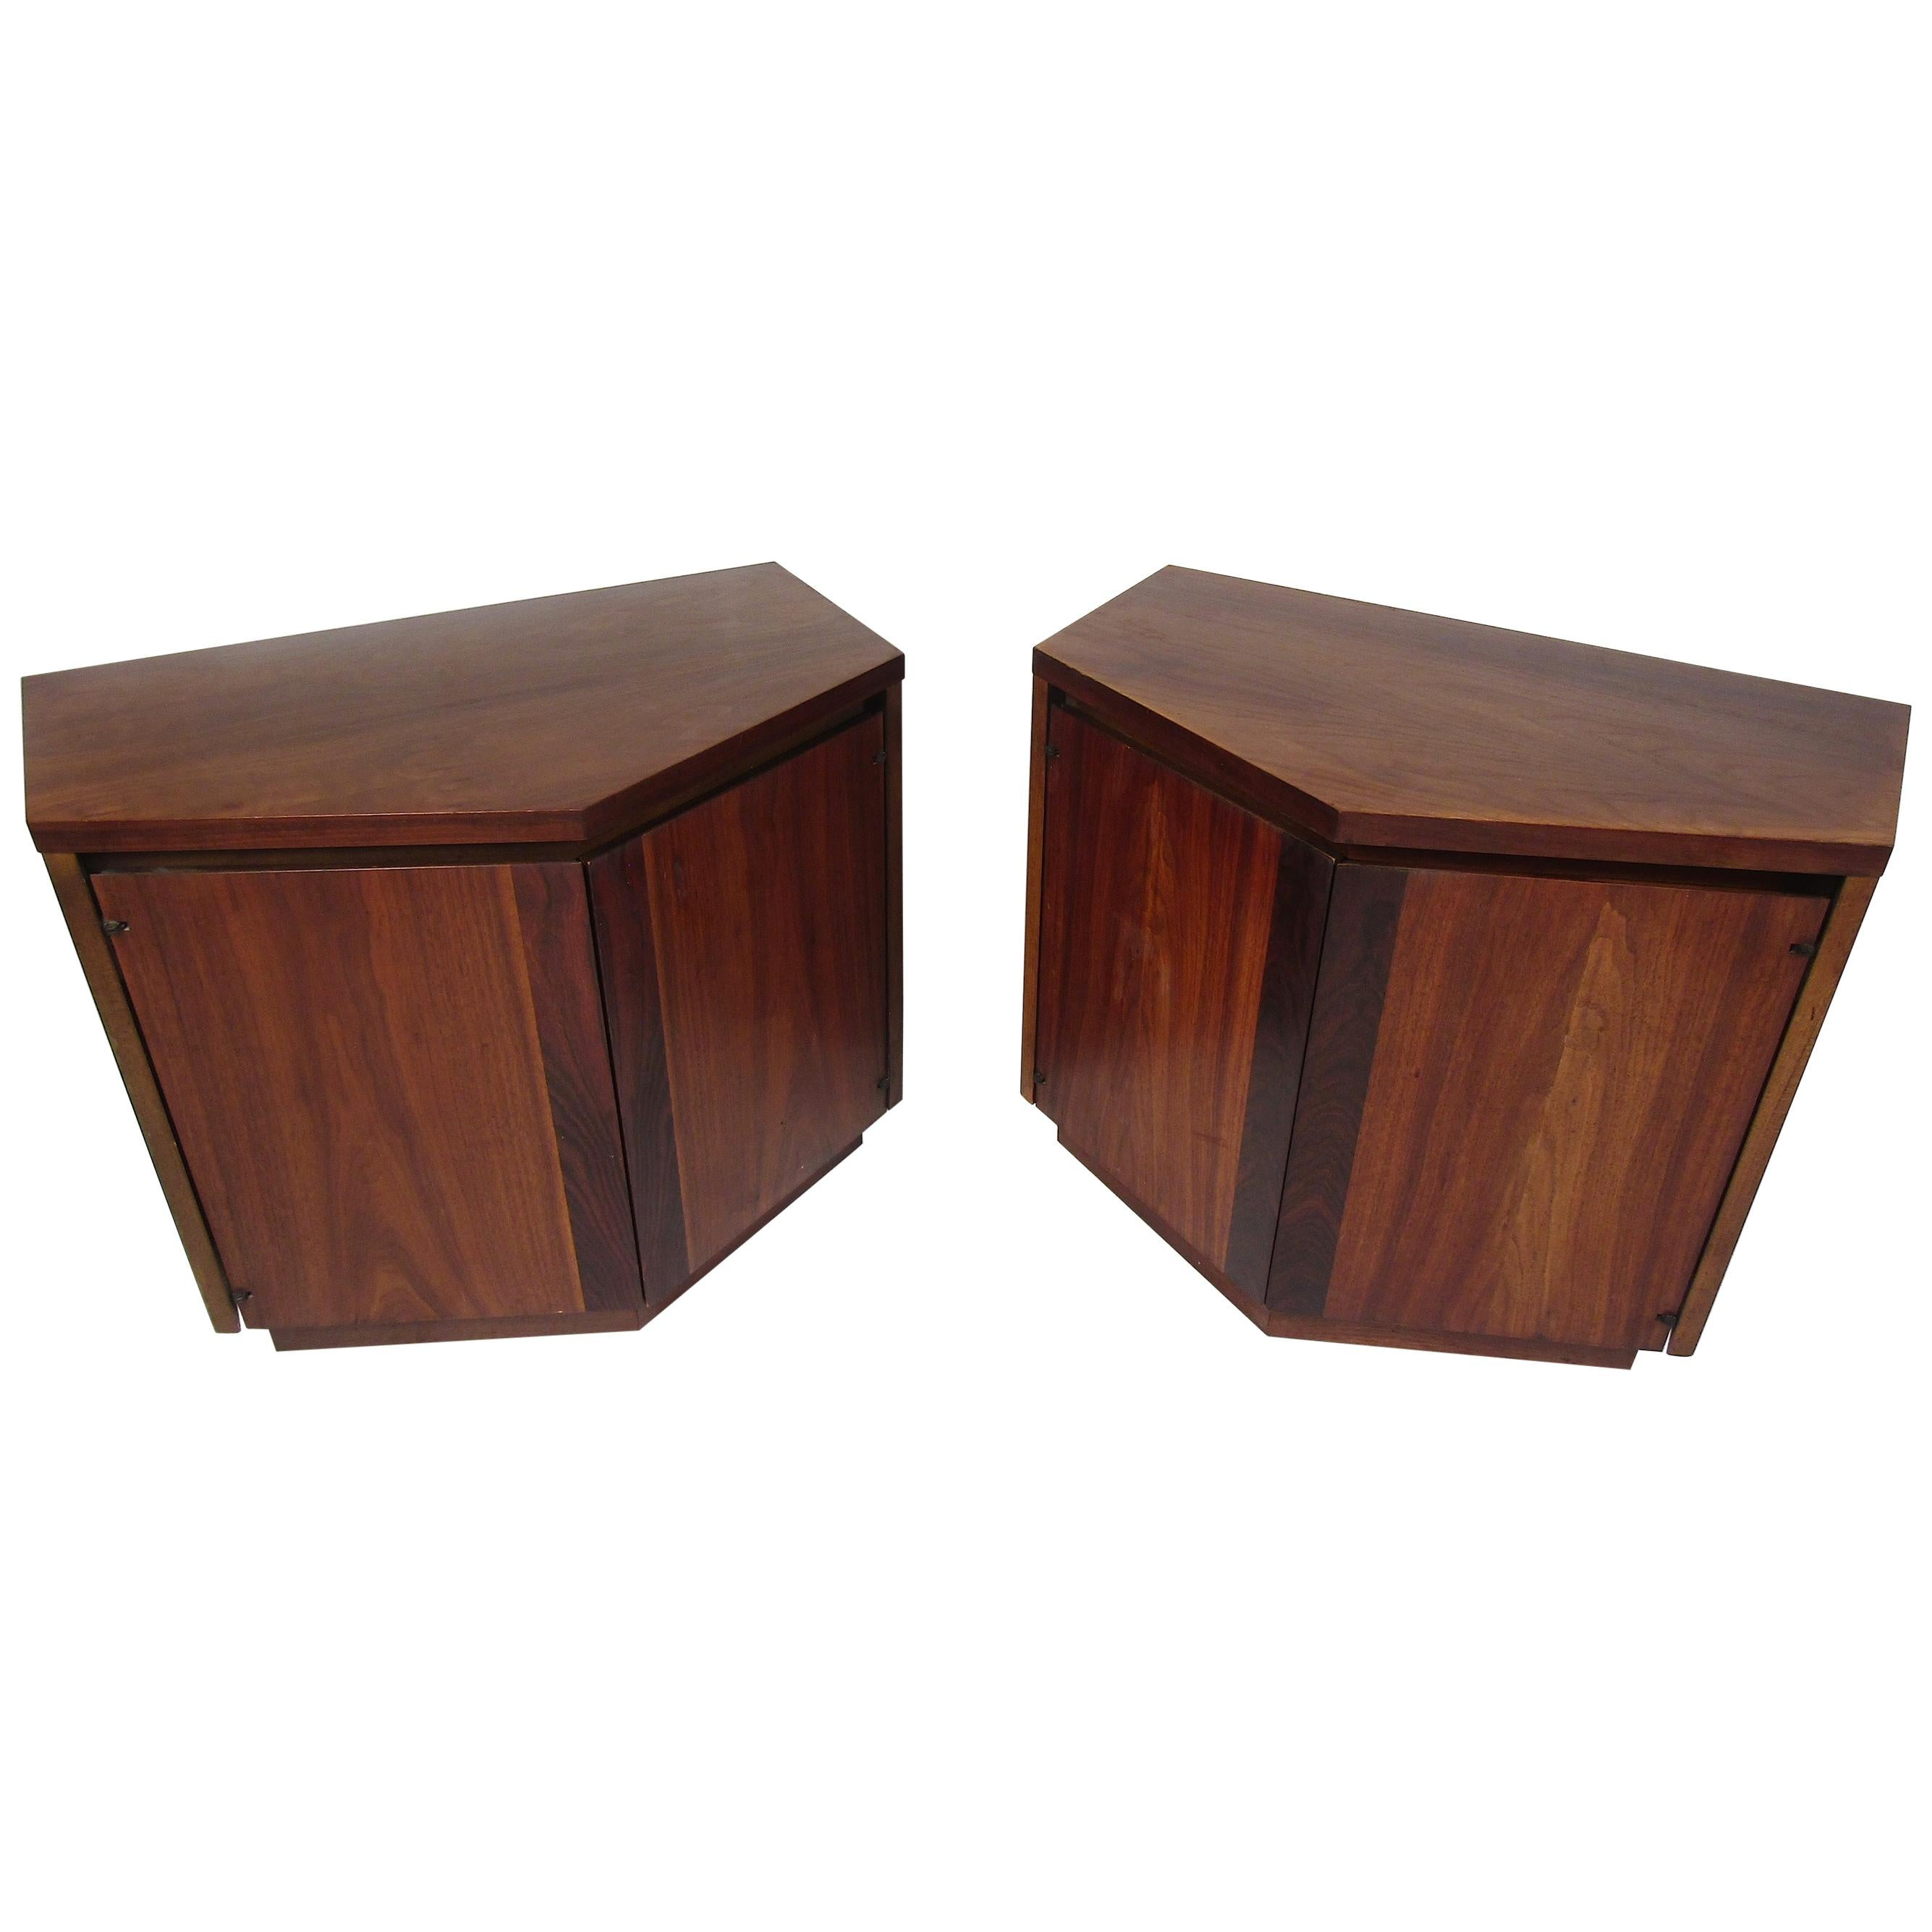 Pair of Midcentury Nightstands in Rosewood and Walnut